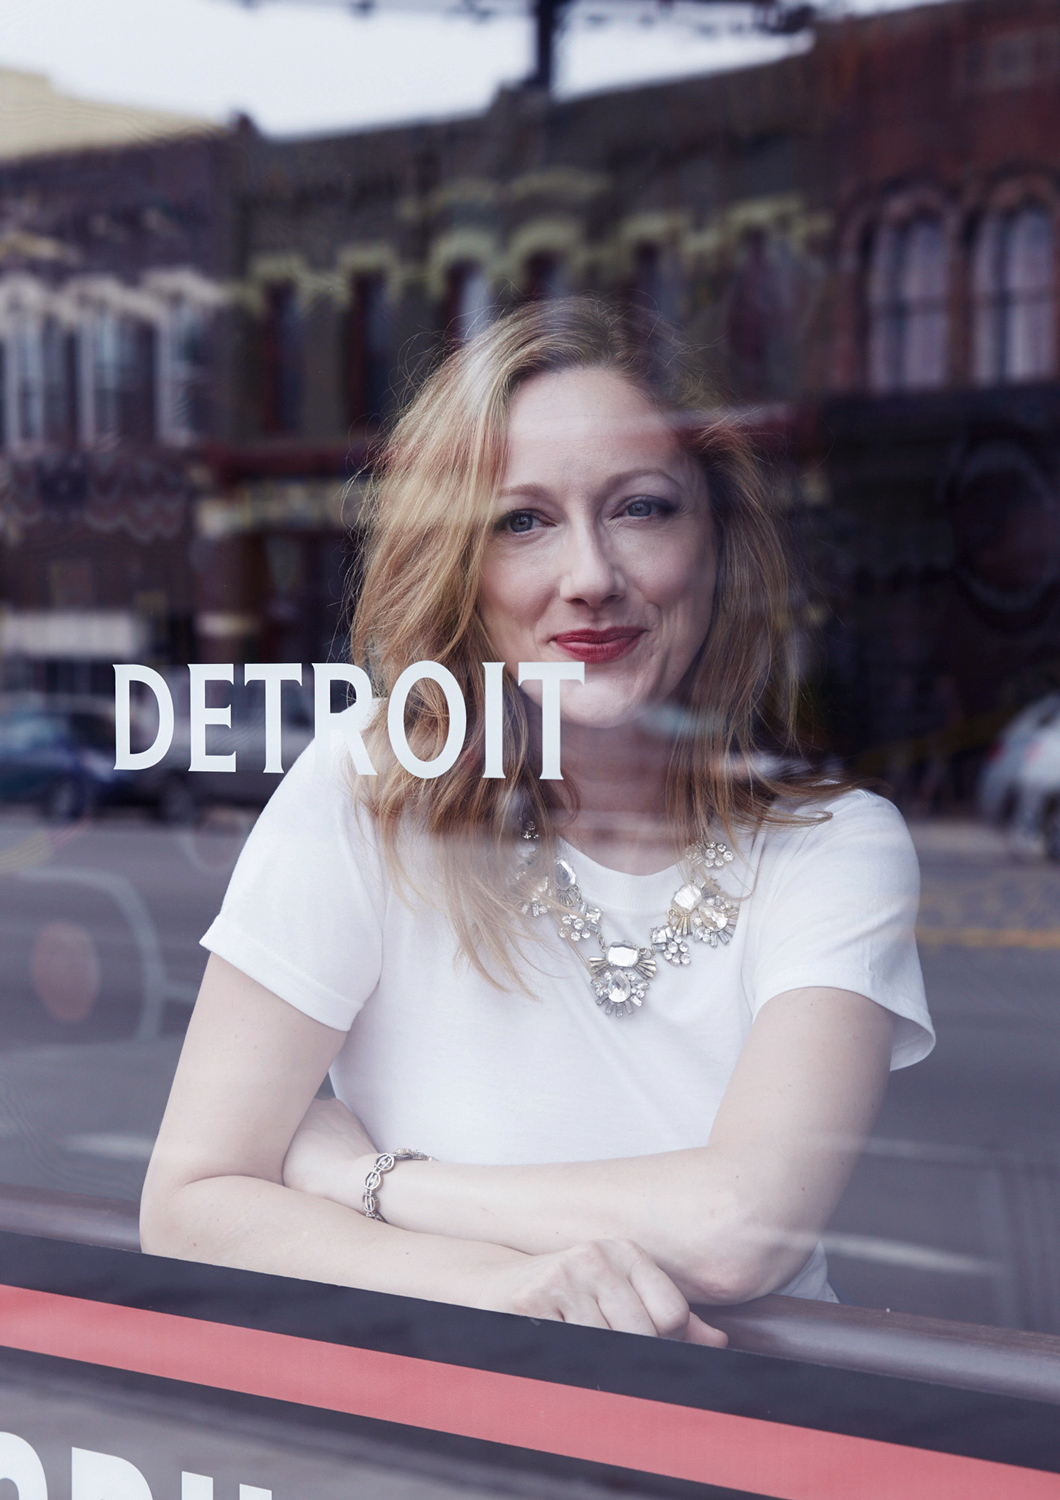 Judy Greer in Detroit, photographed by Grace Huang